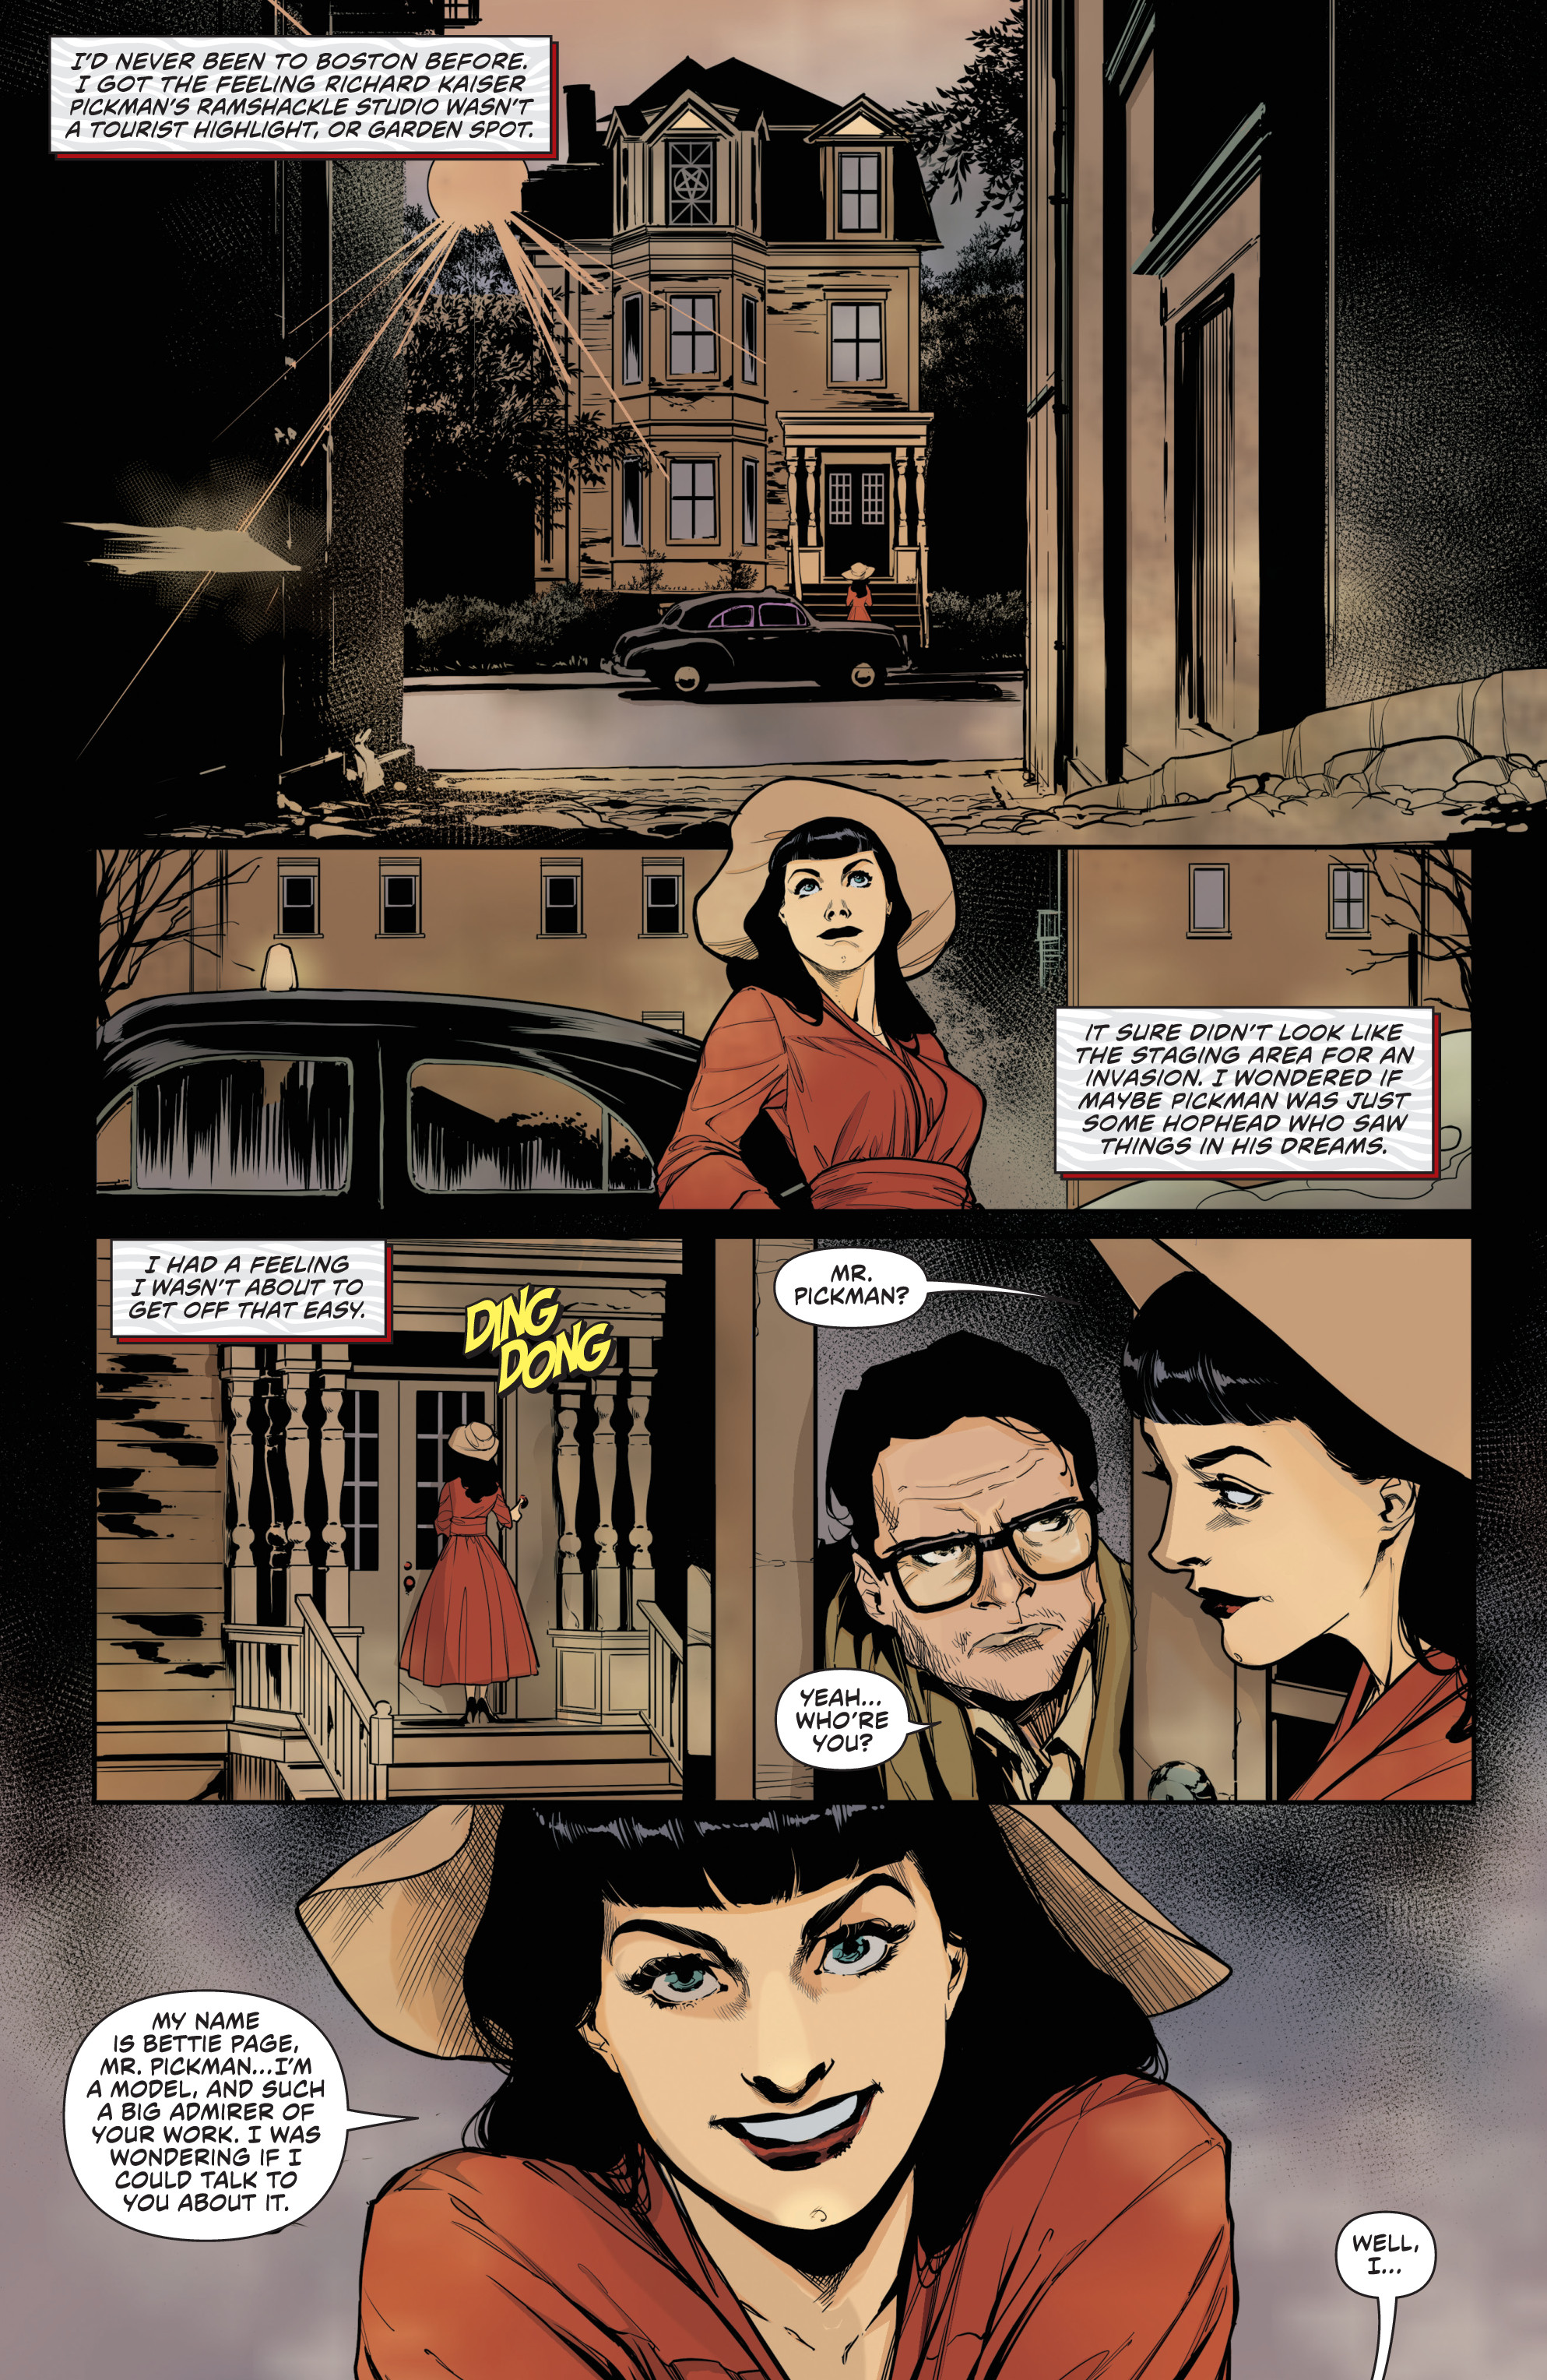 Bettie Page: Halloween Special (2018): Chapter 1 - Page Bettie Page: Halloween Special (2018)